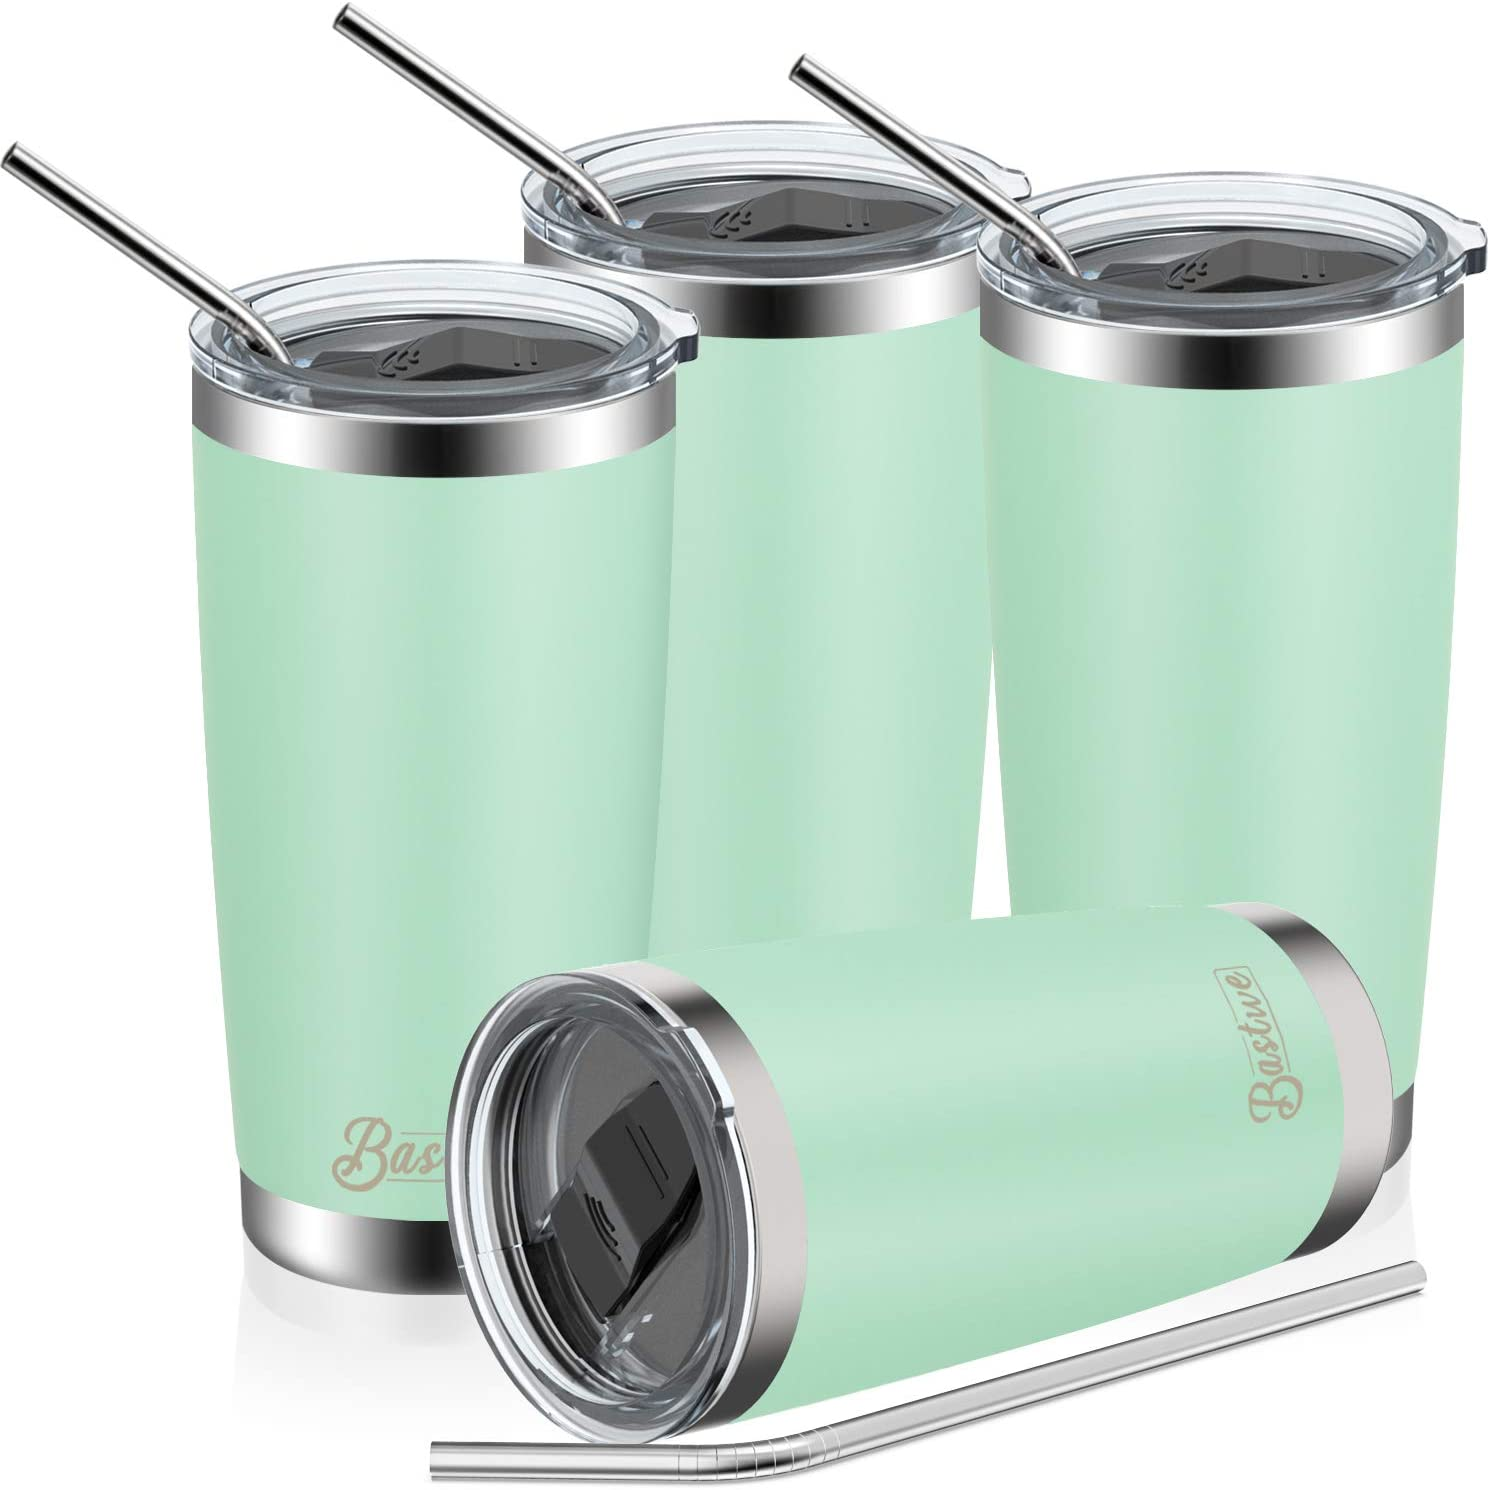 4 Pack 20oz Vacuum Insulated Tumblers, Bastwe Double Wall Stainless Steel Travel Mug with Lid and Straw for Home, Office, School, Works Great for Ice Drink, Hot Beverage (Seafoam)